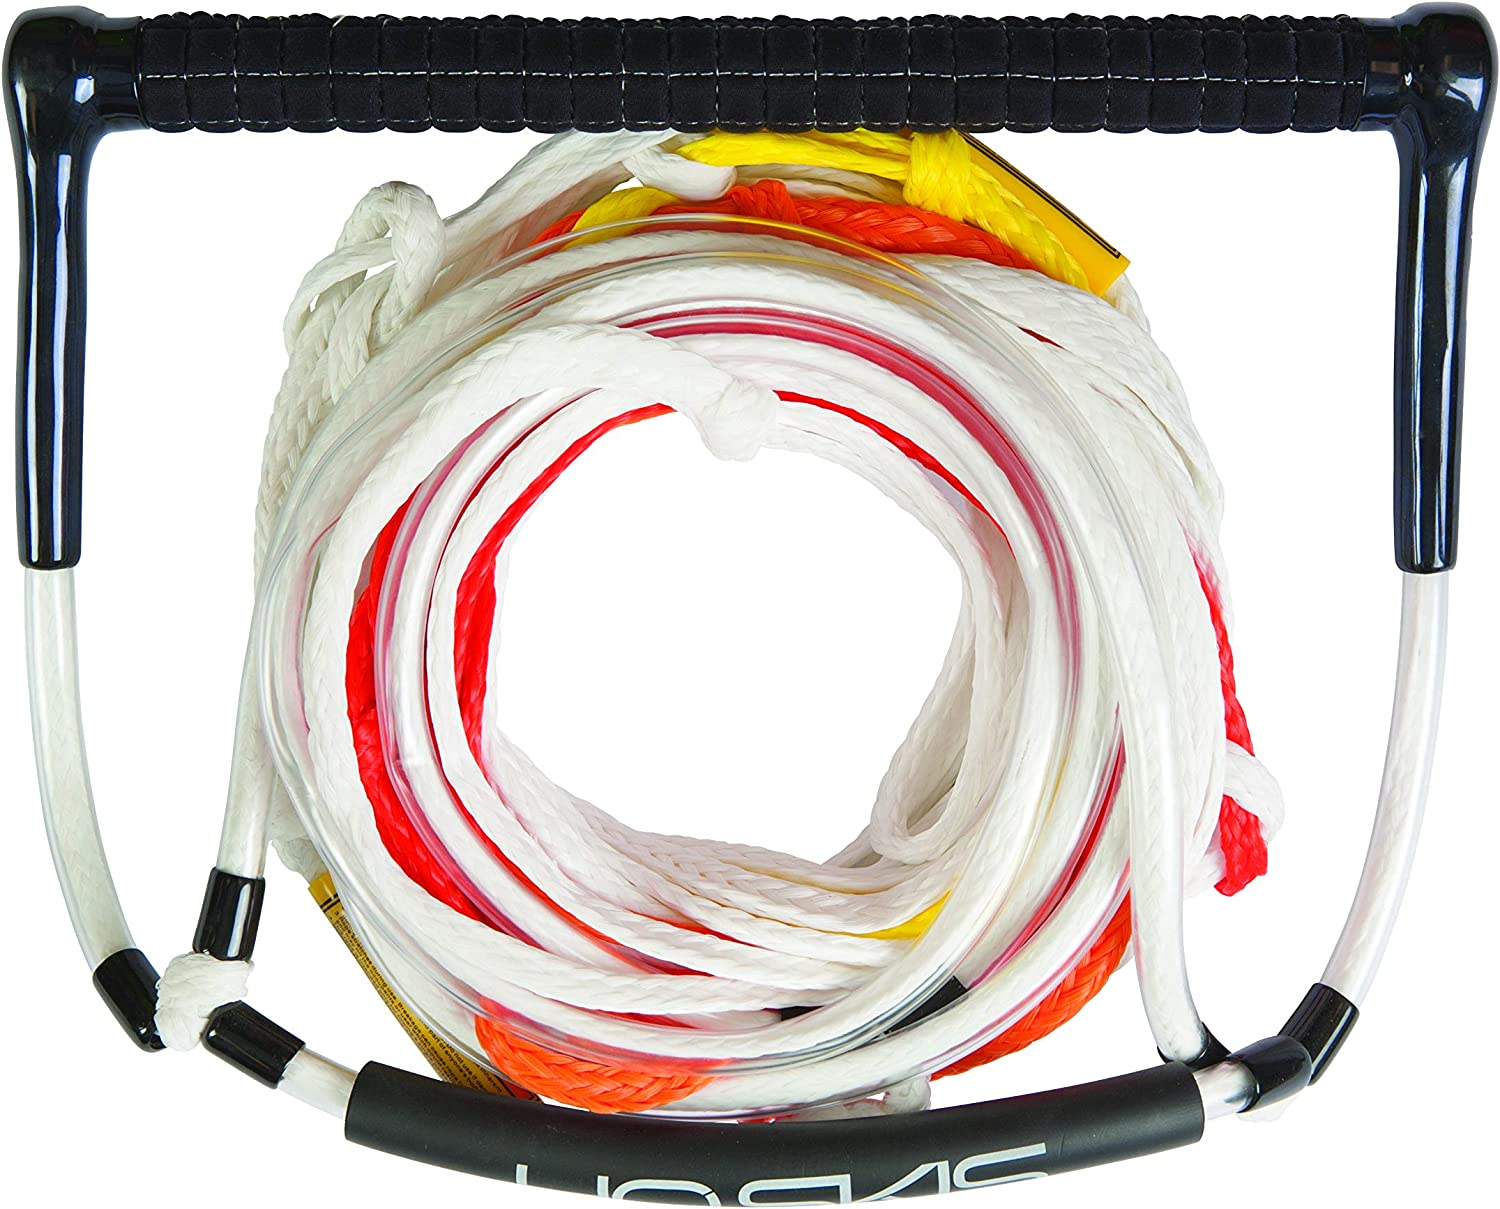 Amazon Com Ho Sports 67127090 Universal Deep V 1 Piece 75 Foot 1 Section Slalom Water Ski Mainline Tow Line Rope 12 Inch Handle With Tacky Grip Waterskiing Ropes And Handles Sports Outdoors